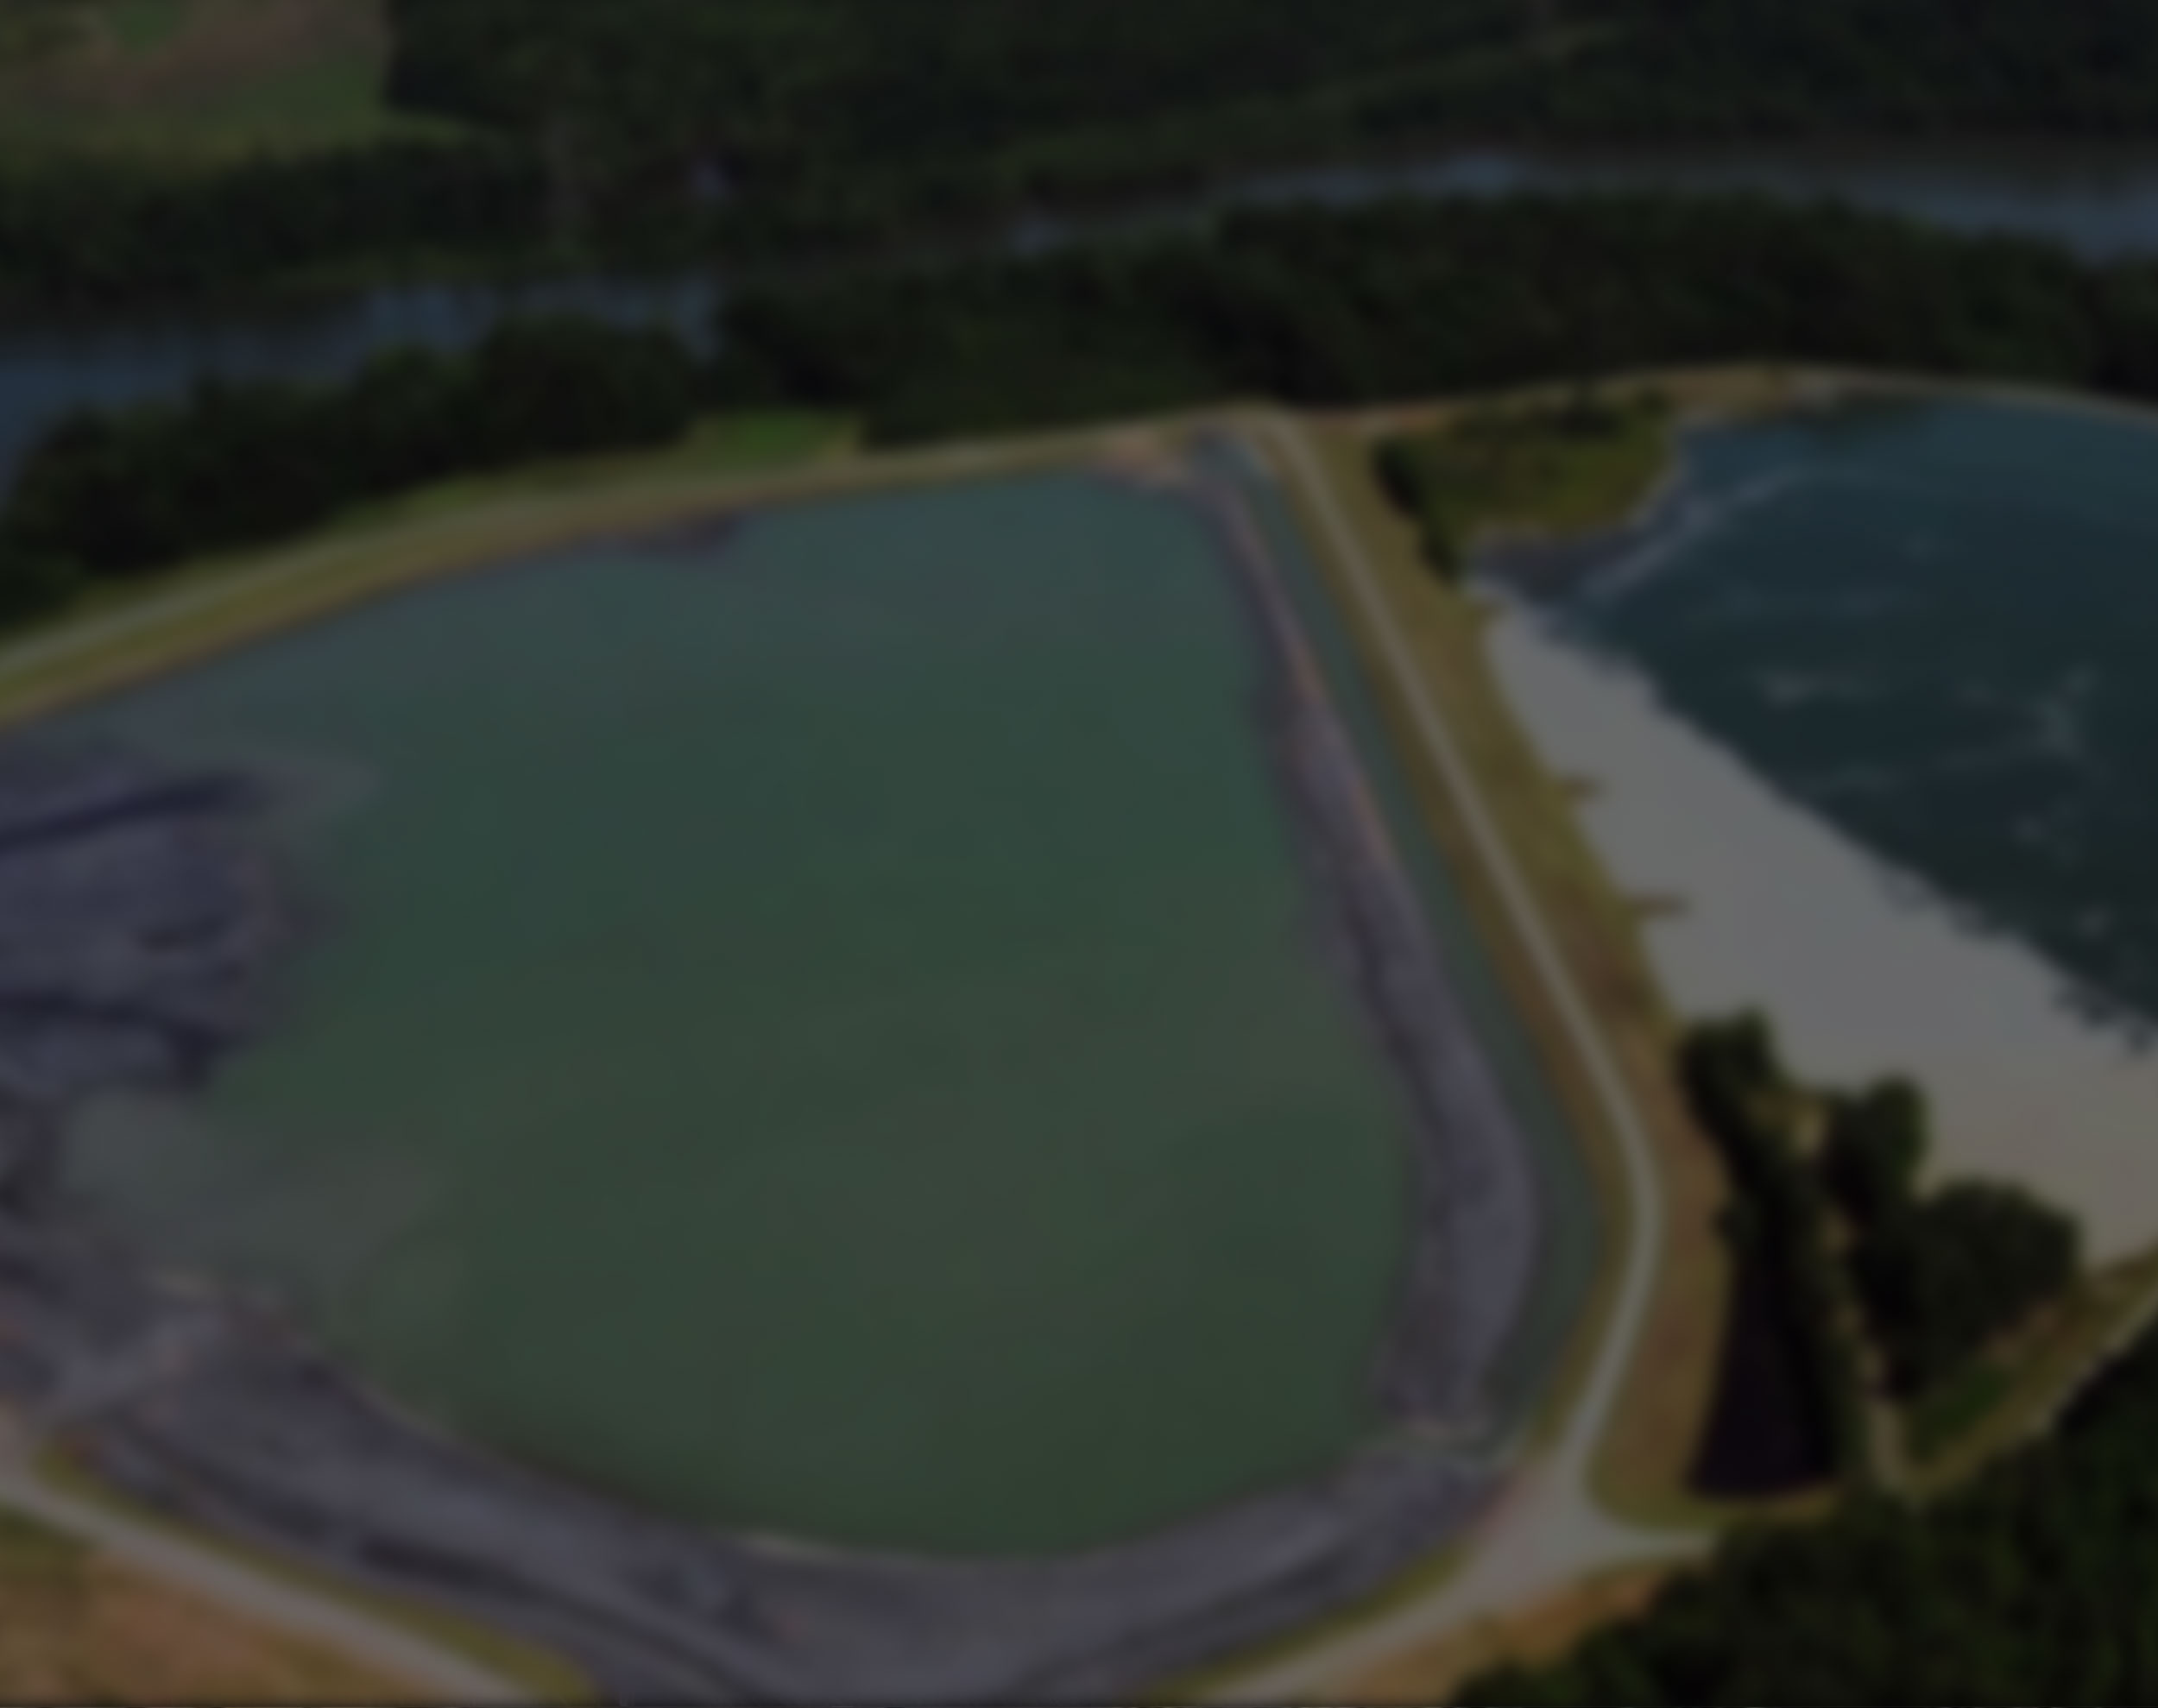 ashes to ashes - Ash Ponds Not Regulated Under Clean Water Act